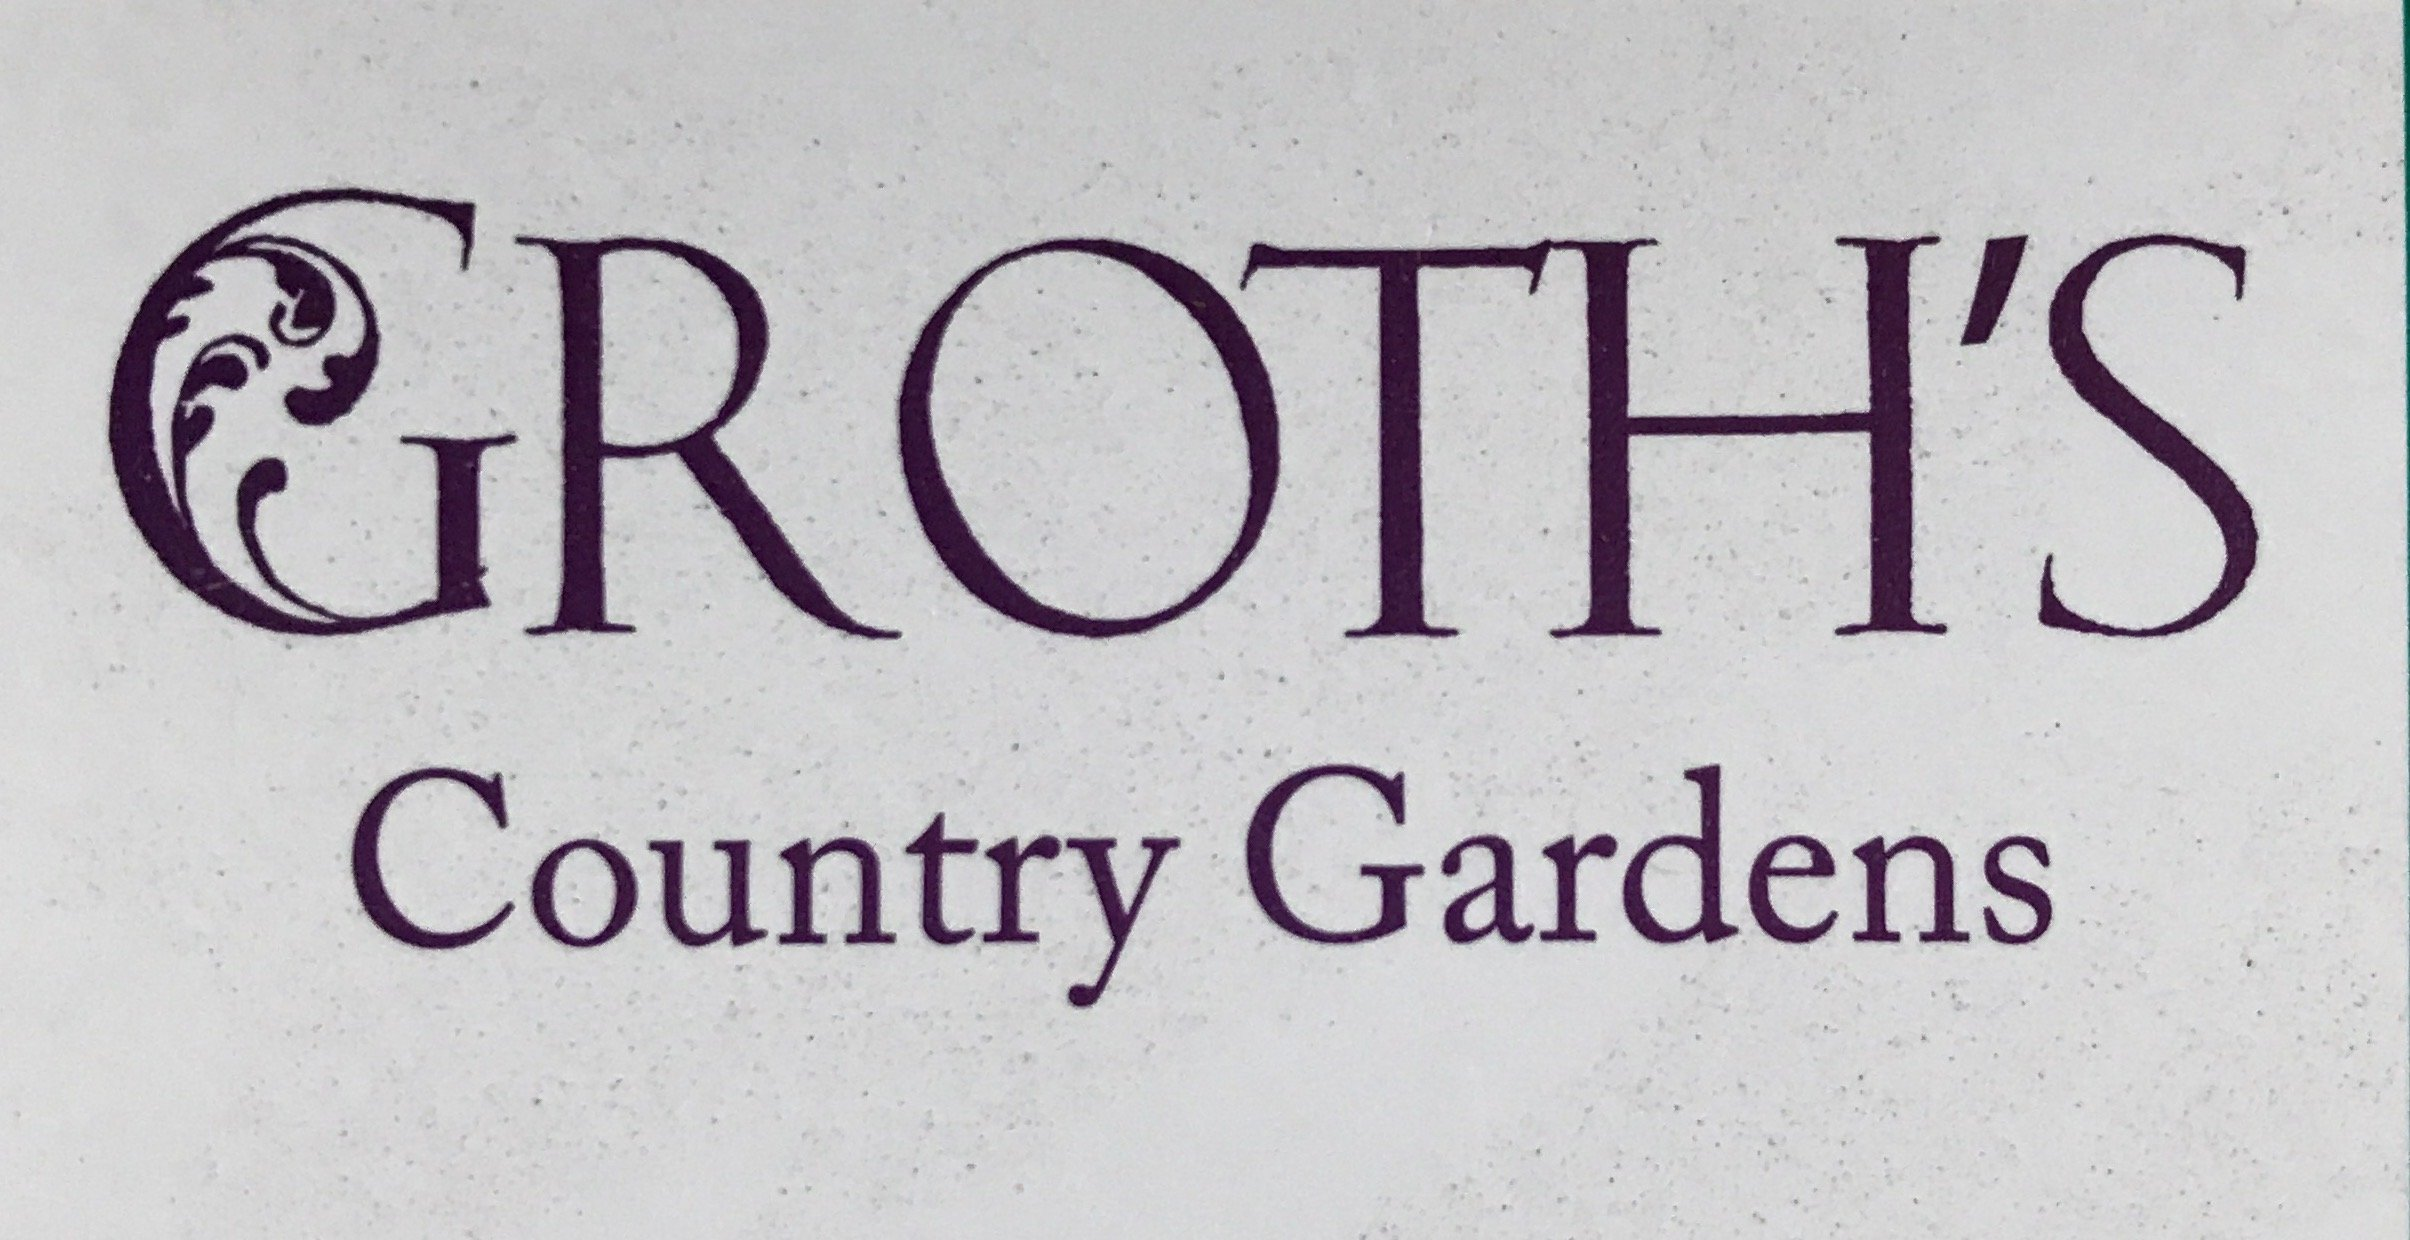 Groths Country Gardens